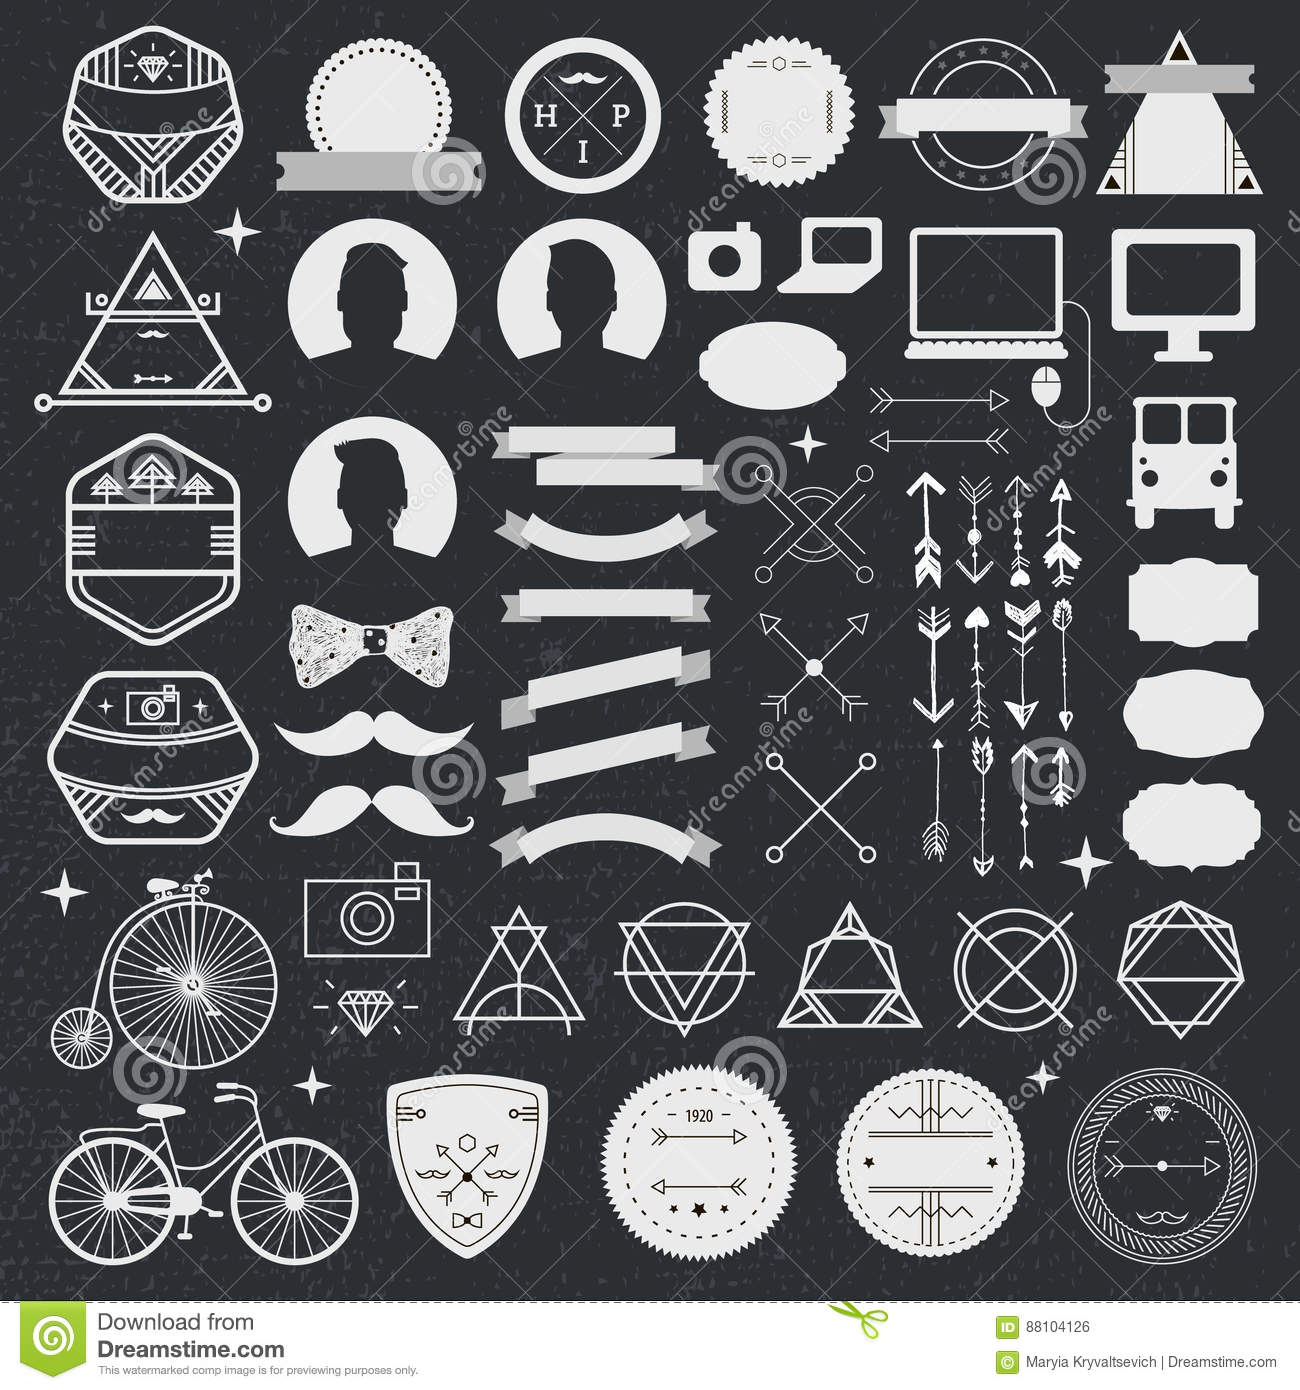 Set of vintage styled design hipster icons. Vector signs and symbols templates for design. phone, gadgets, arrows